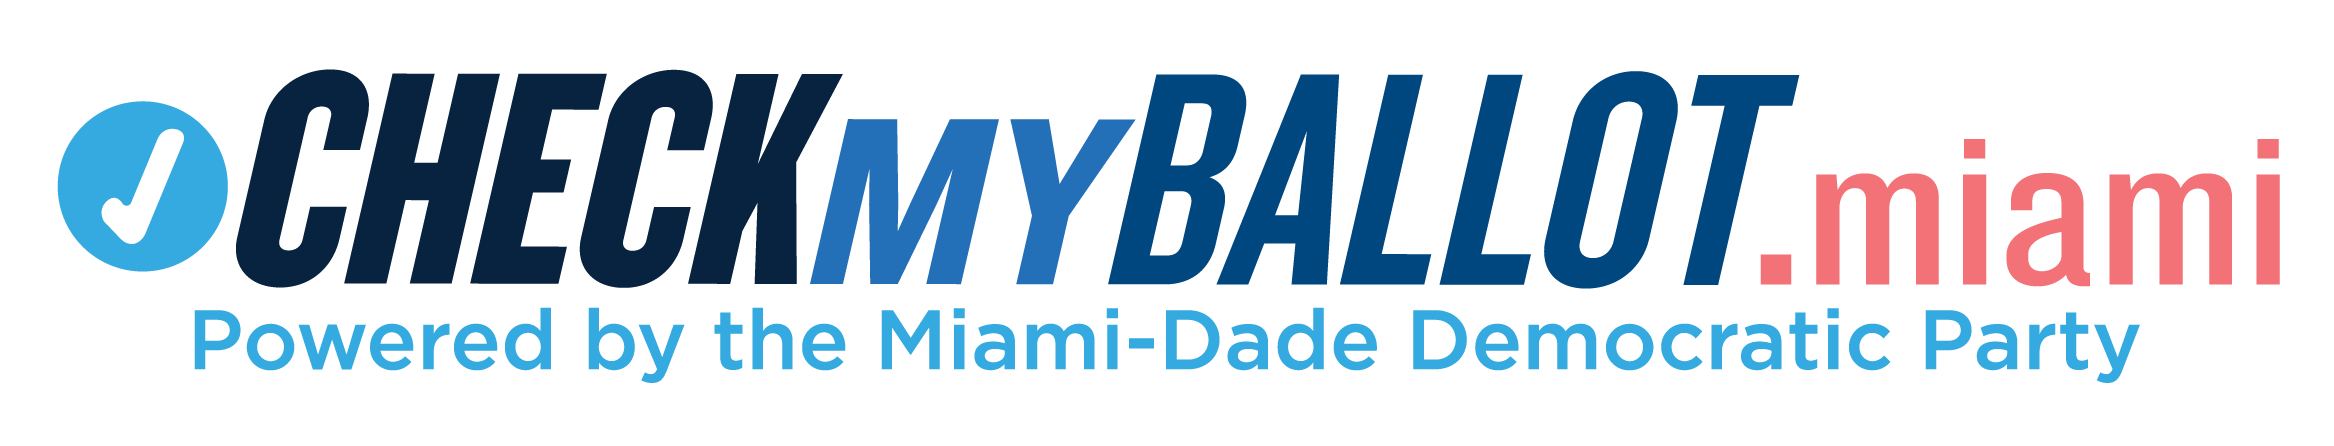 Check My Ballot Miami - Are you signed up to receive your ballot in October?